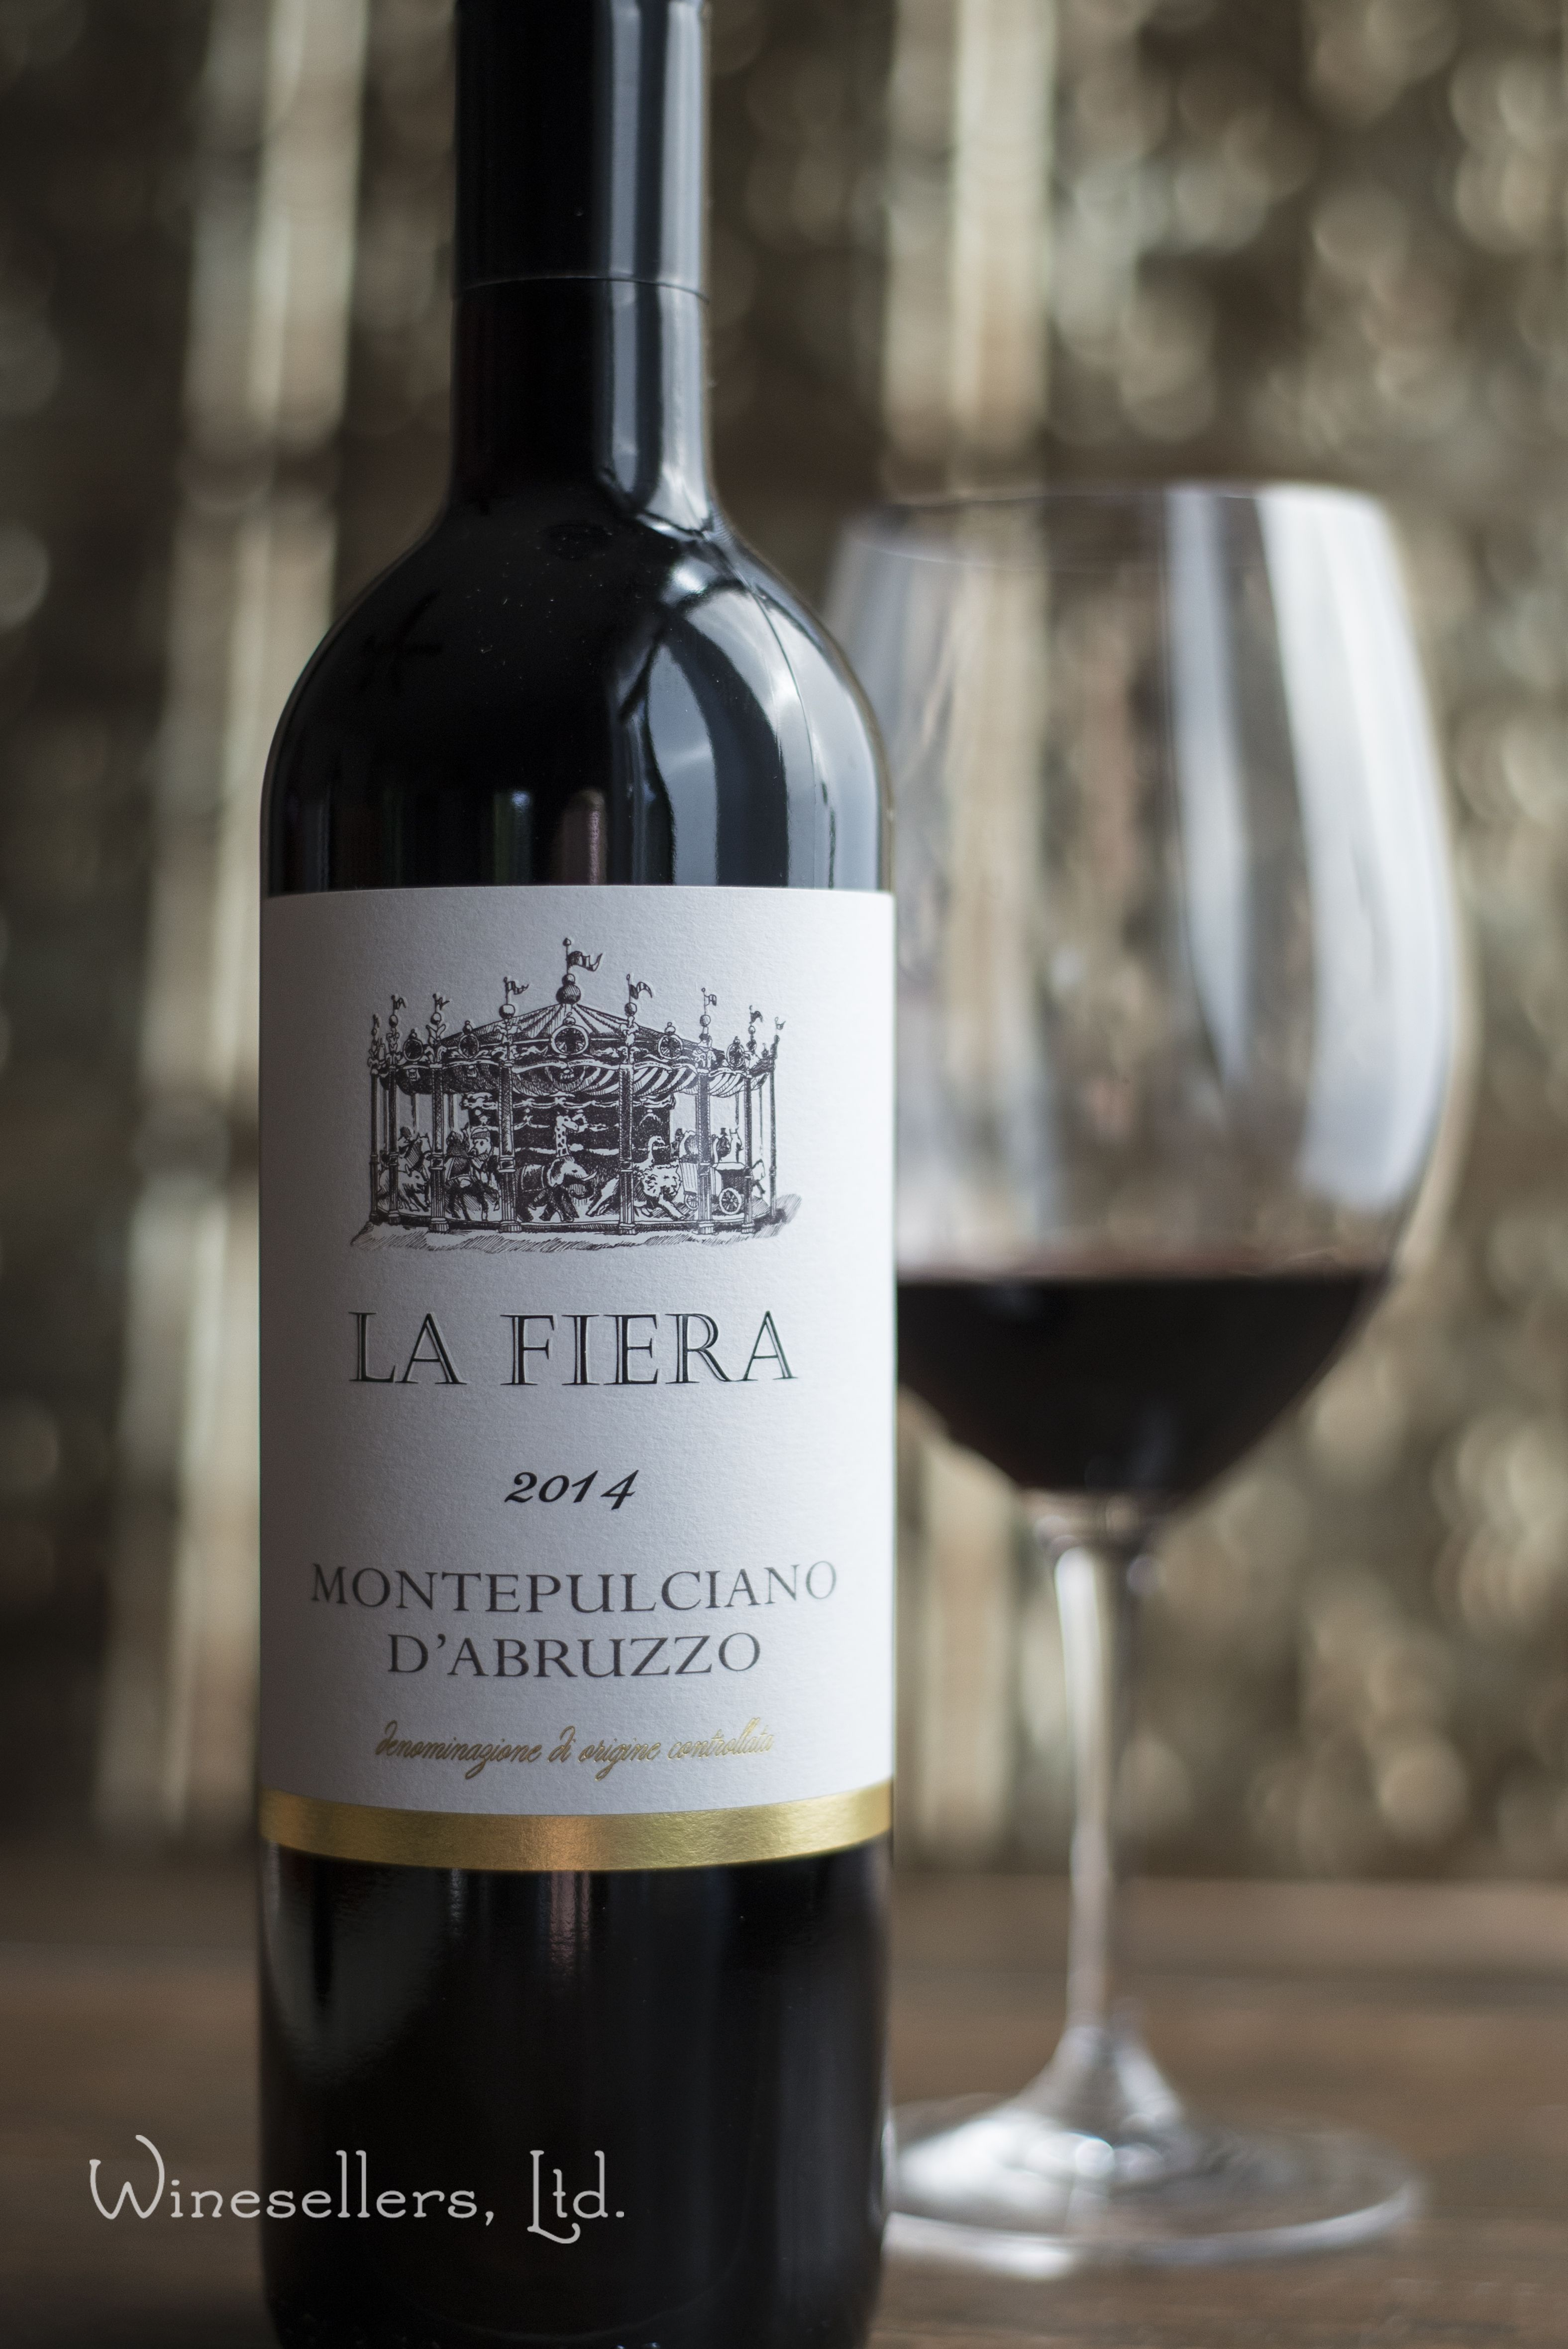 La Fiera Montepulciano d'Abruzzo is a ruby-red color with ...